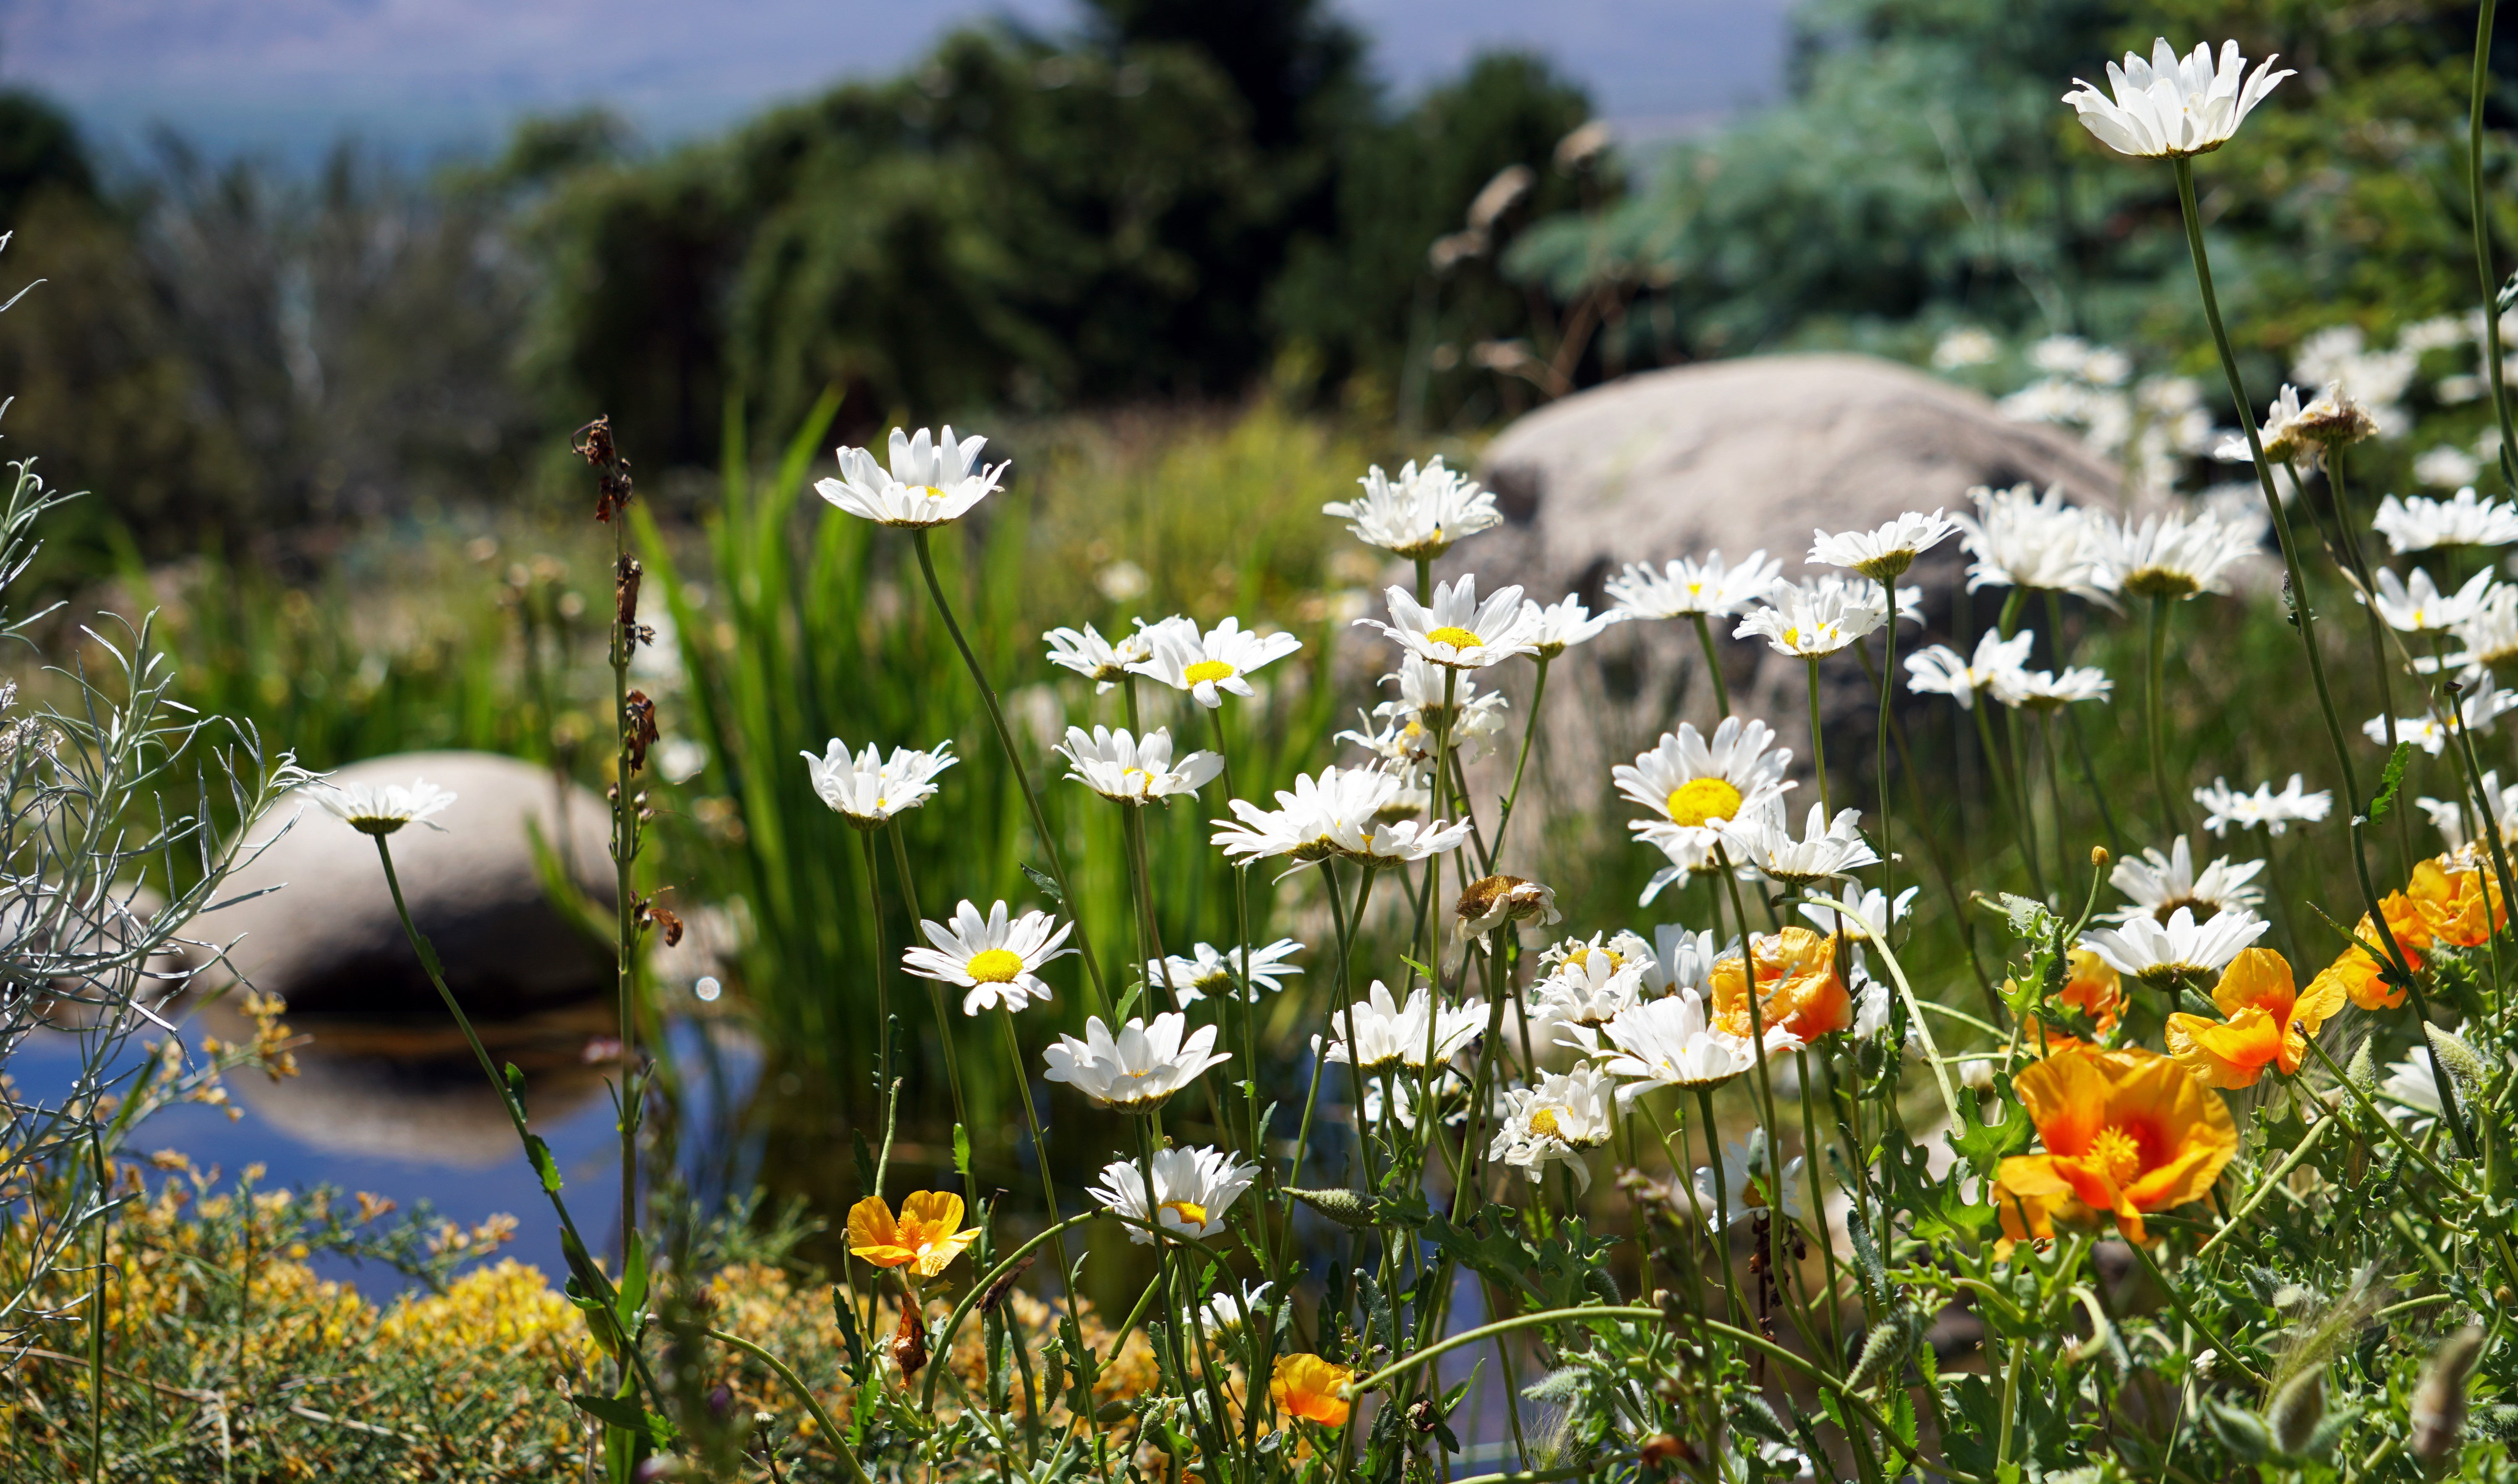 Flowers and pond in the Eastern Sierra